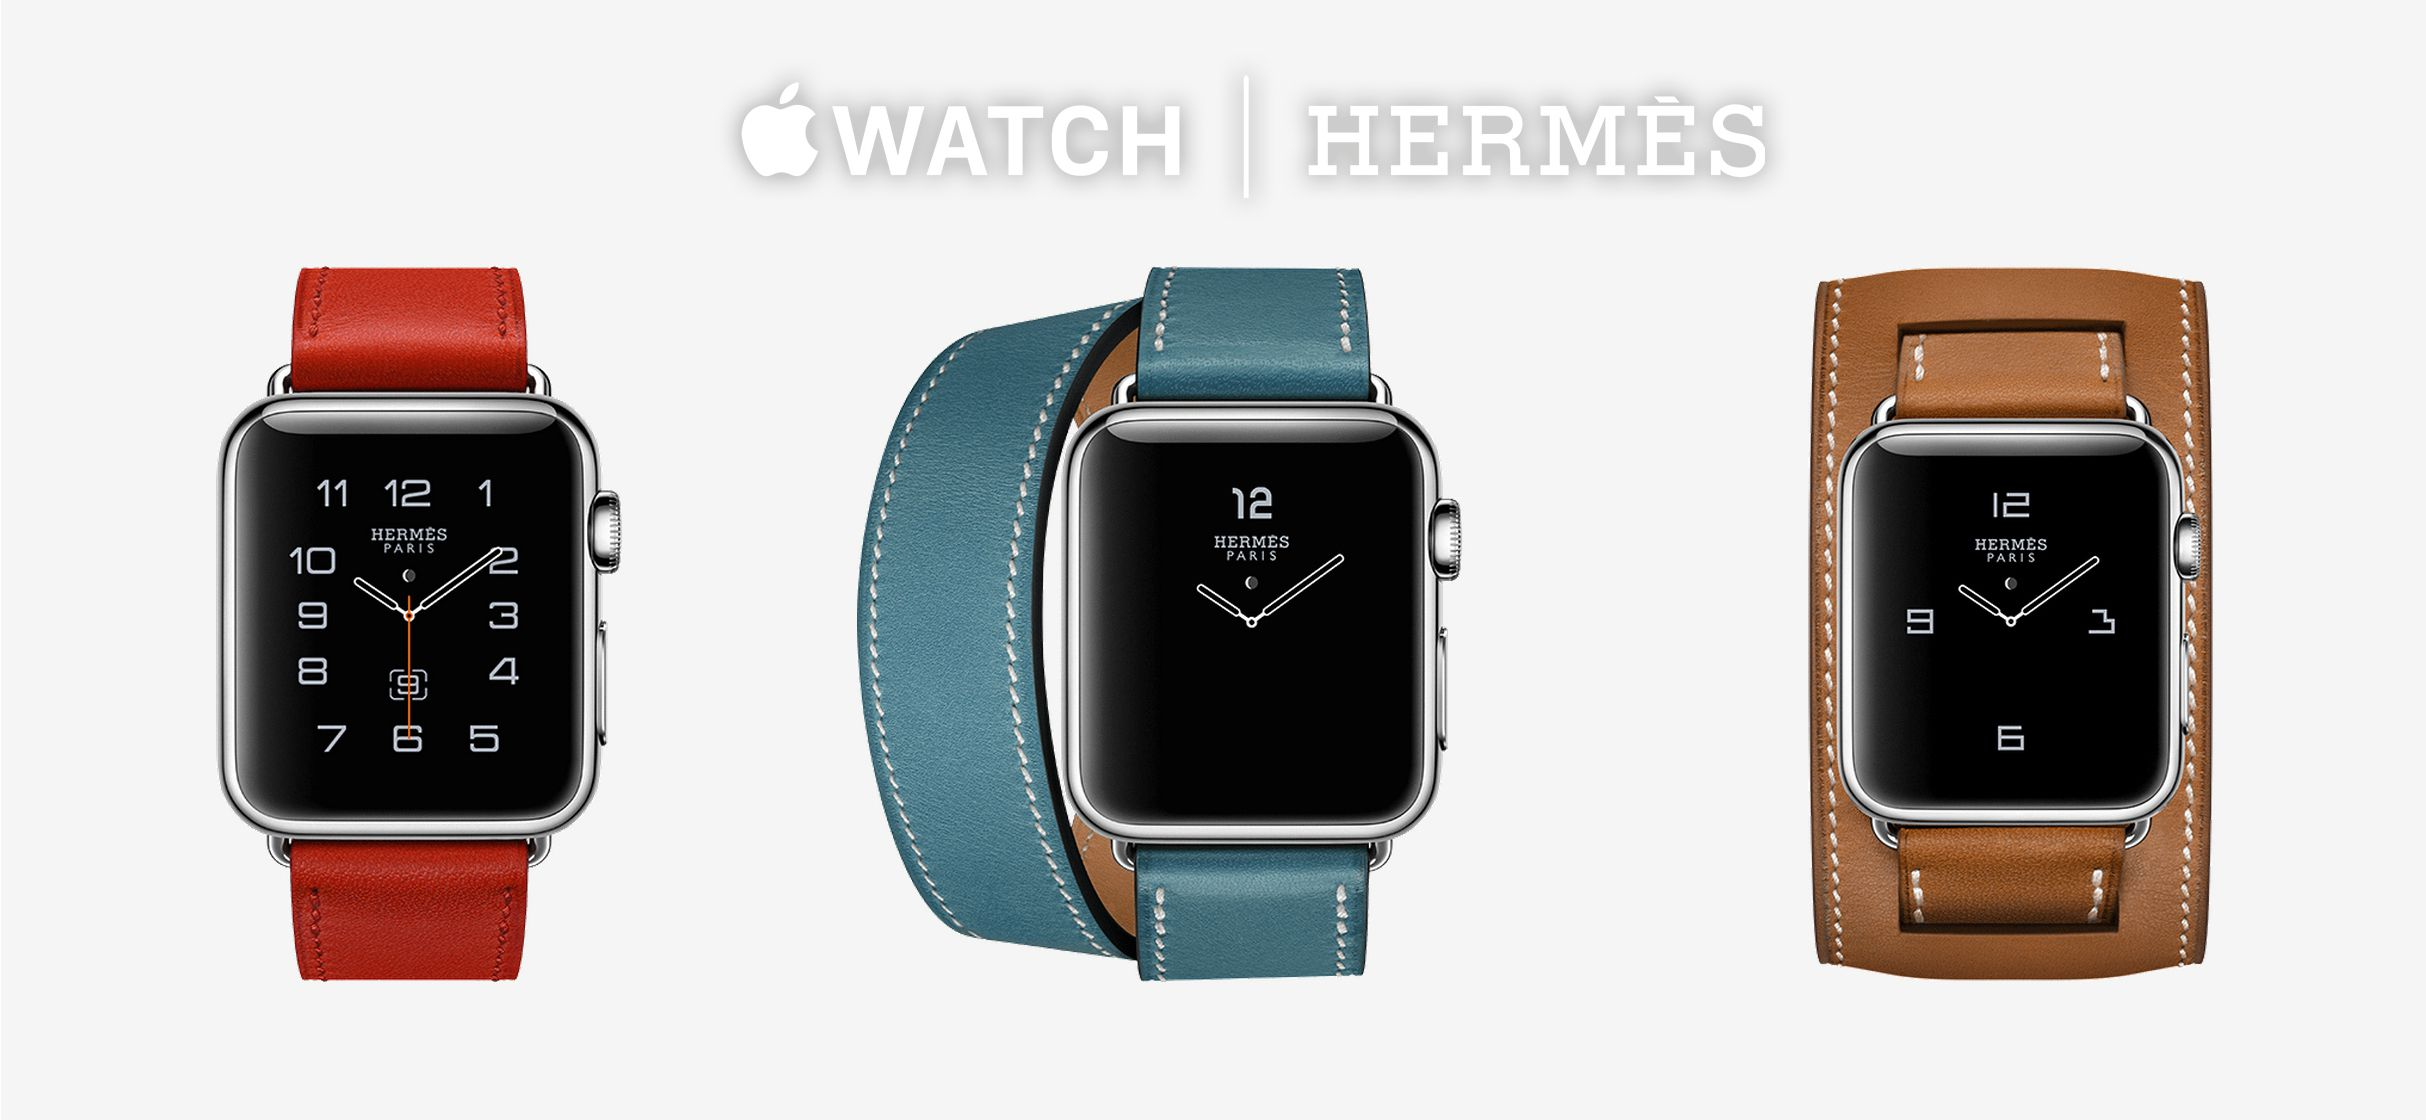 silver plum handbags - The Apple Watch Herm��s is now available | The Verge